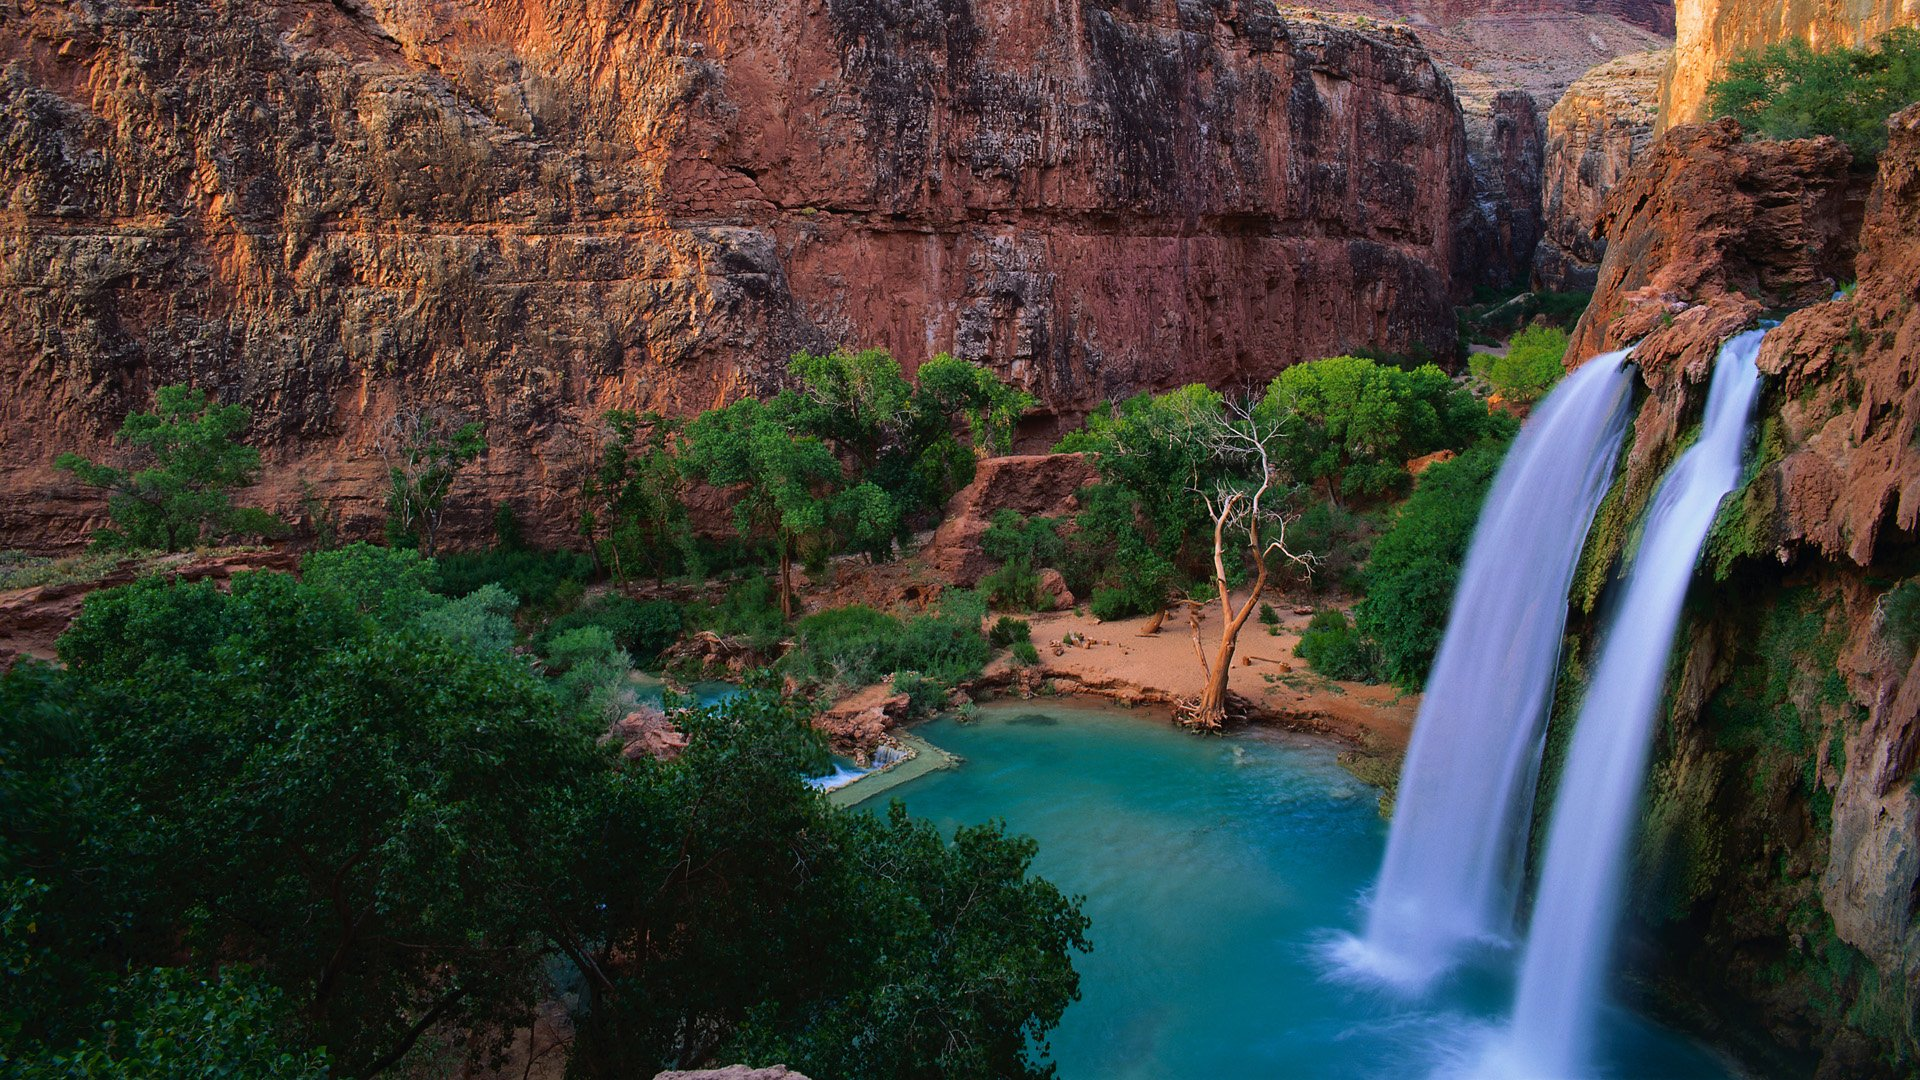 Havasu Falls Wallpaper Havasu Falls Hd Wallpaper Background Image 1920x1080